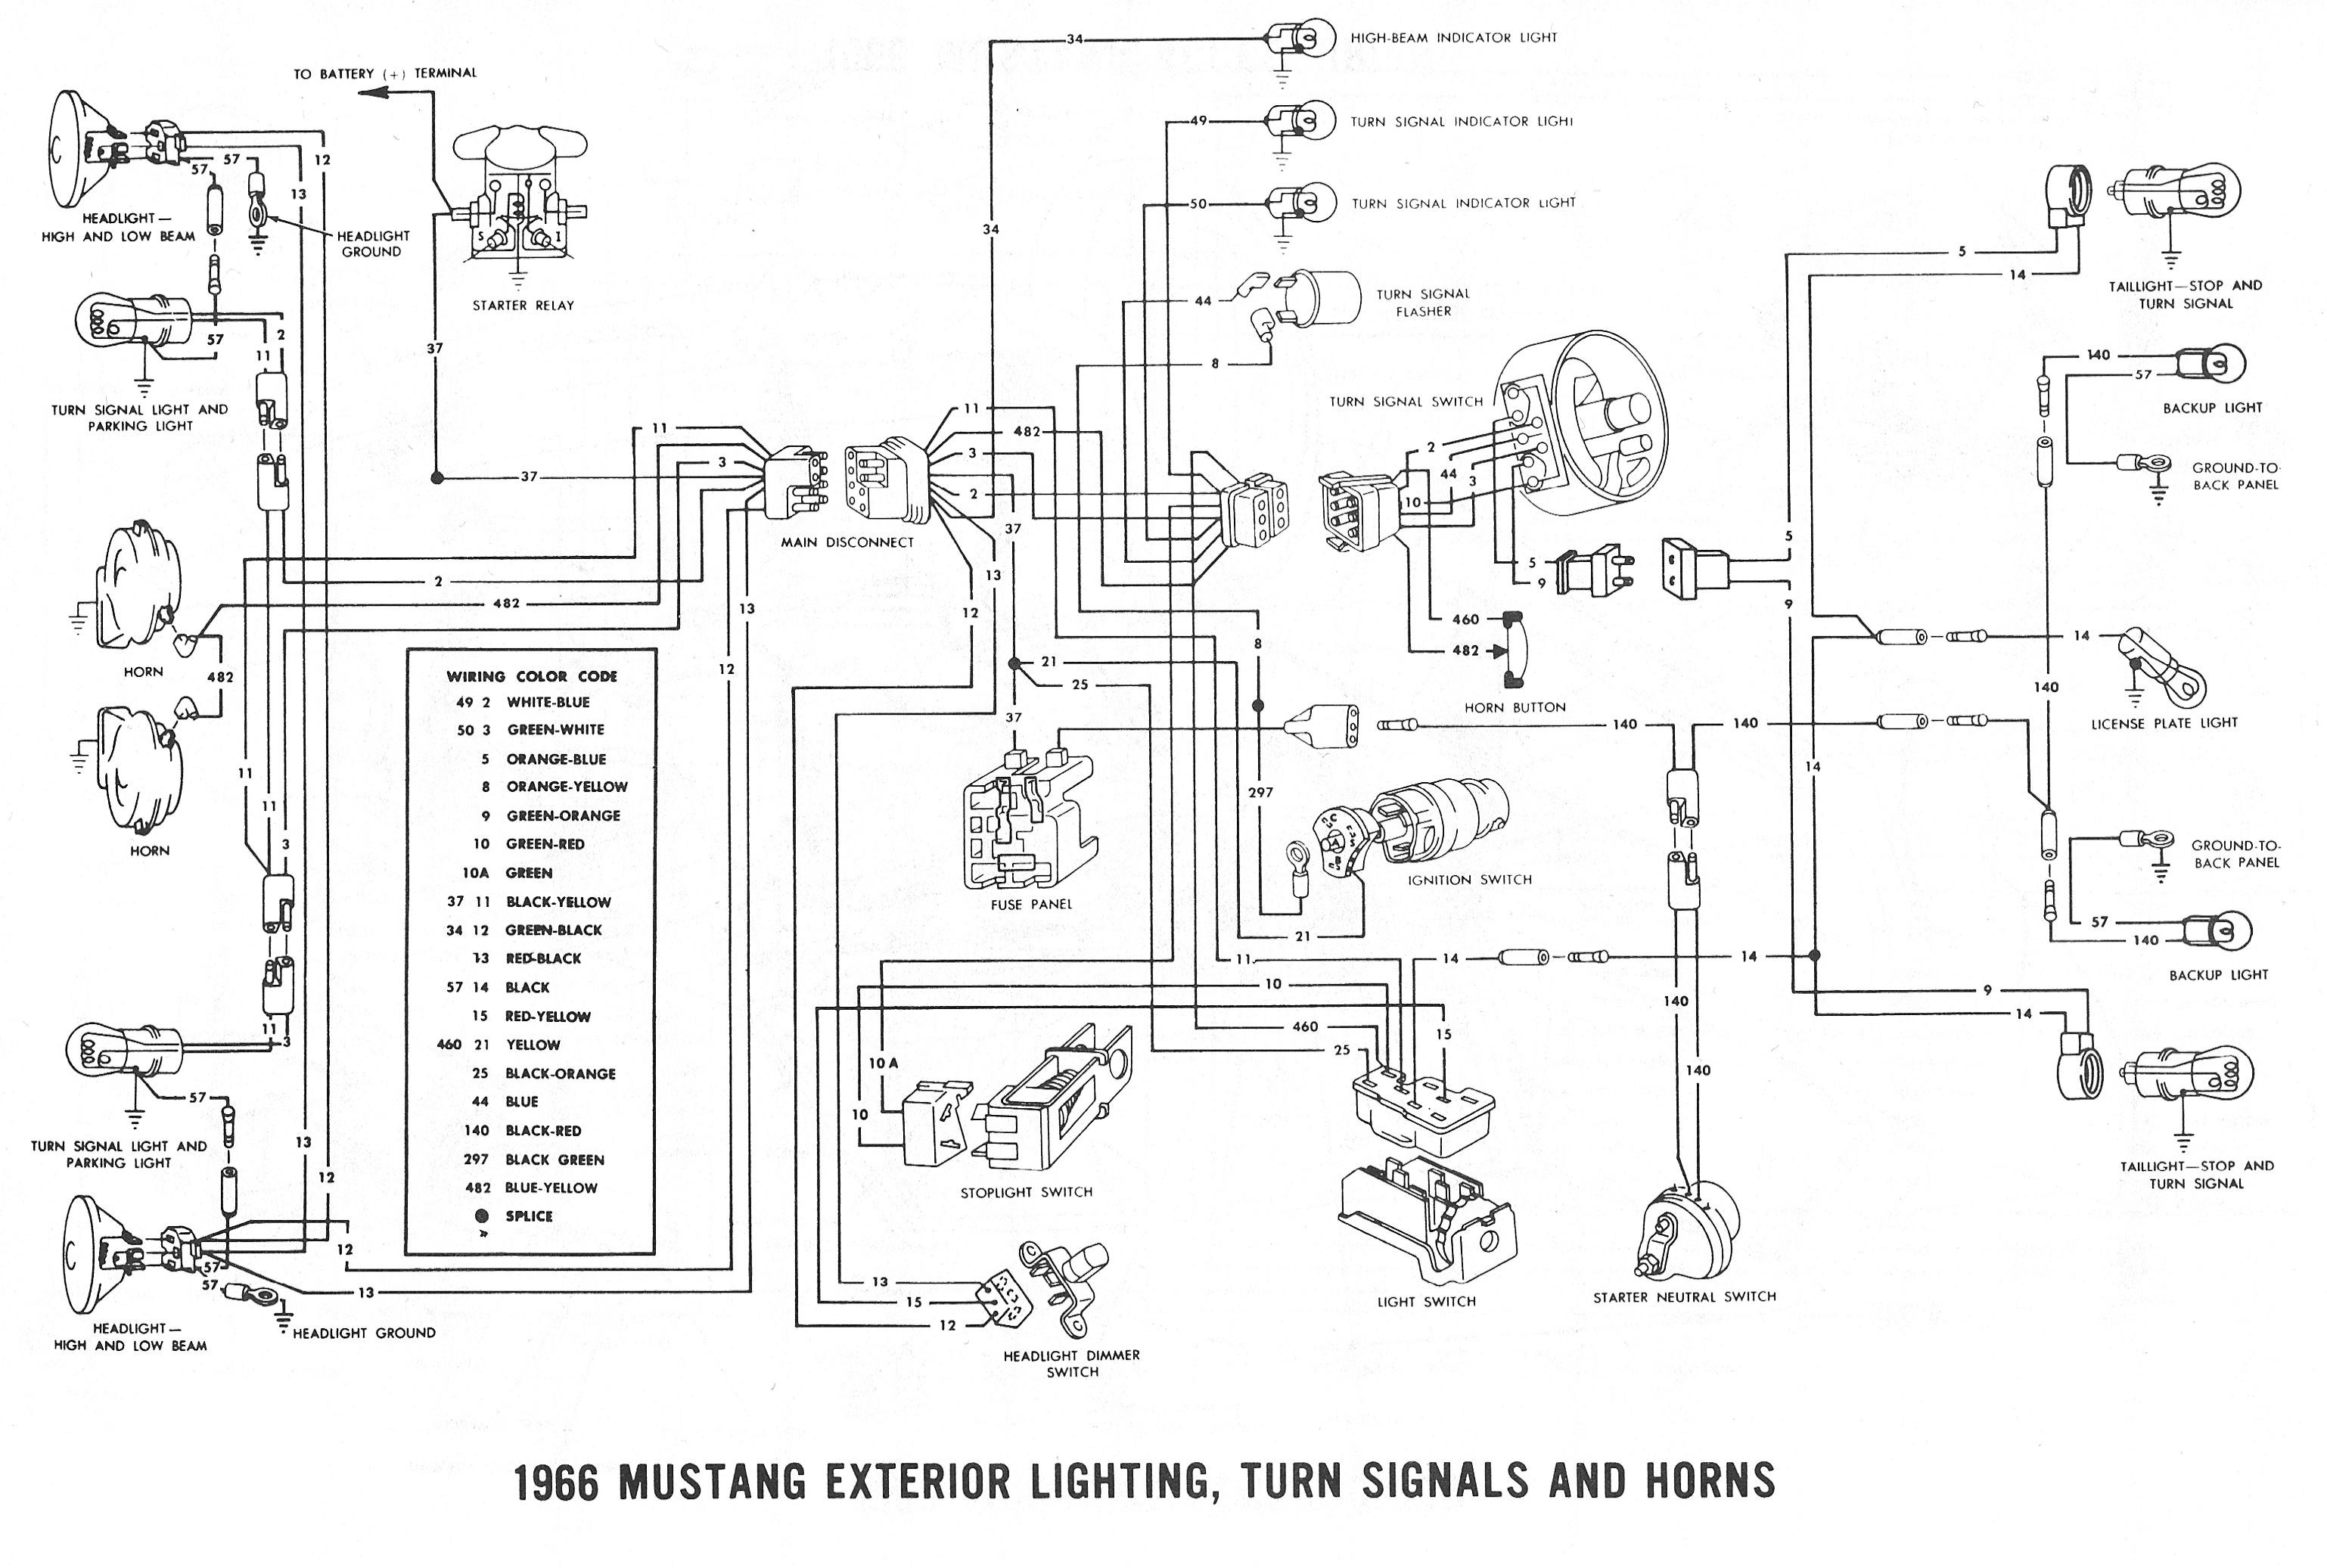 1966 Ford Mustang Electrical Wiring Diagrams Auto Electrical 1966 Chevy  Truck Heater Wiring